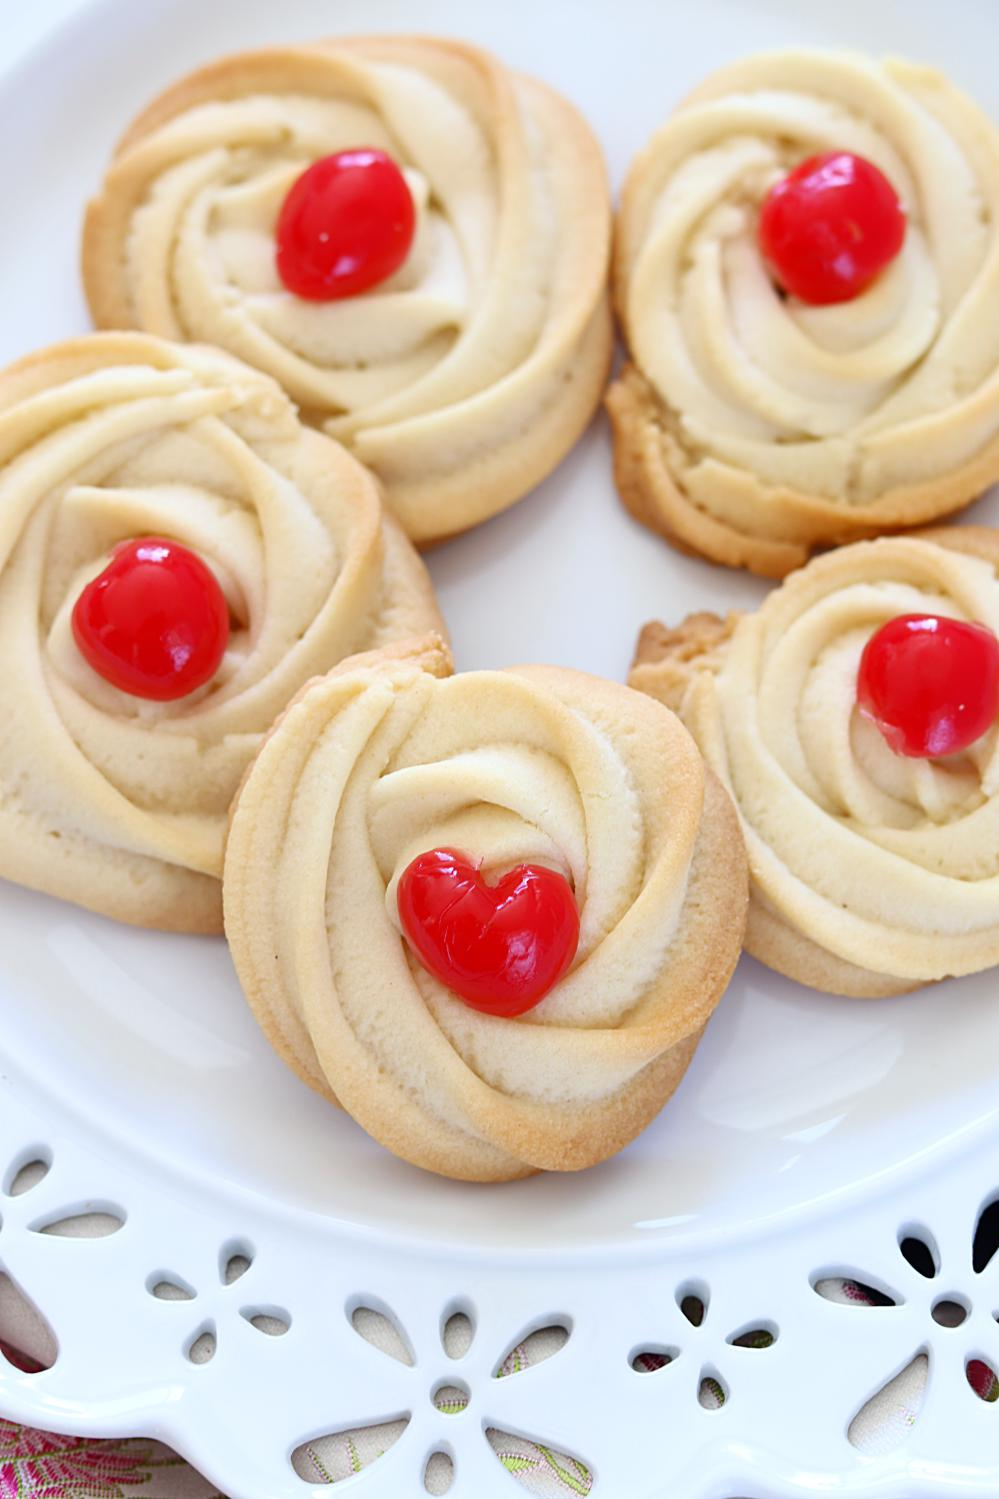 Eggless Swirl Shortbread Cookies decorated with cherries